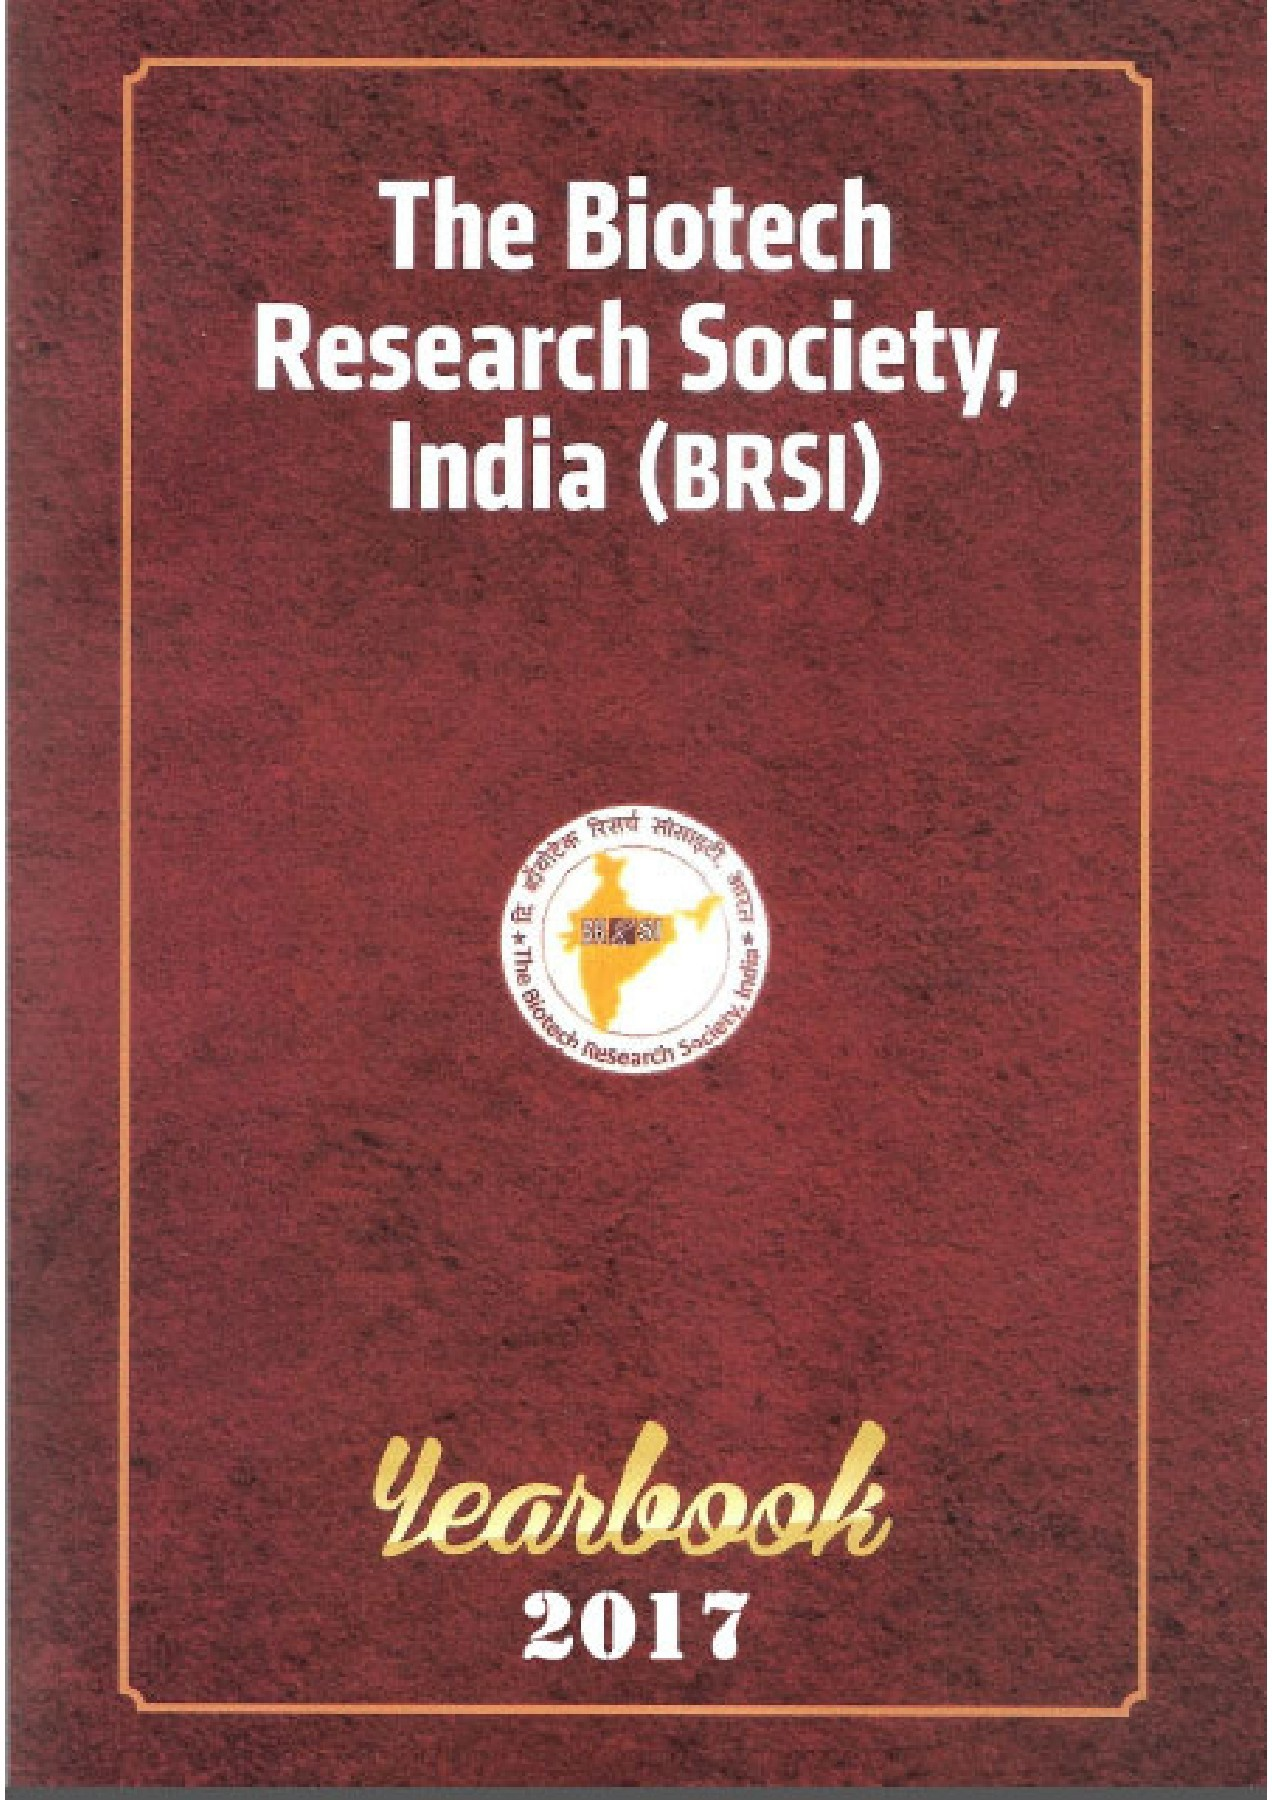 Brsi Yearbook Final Pdf Flip Book Pages 1 50 Pubhtml5